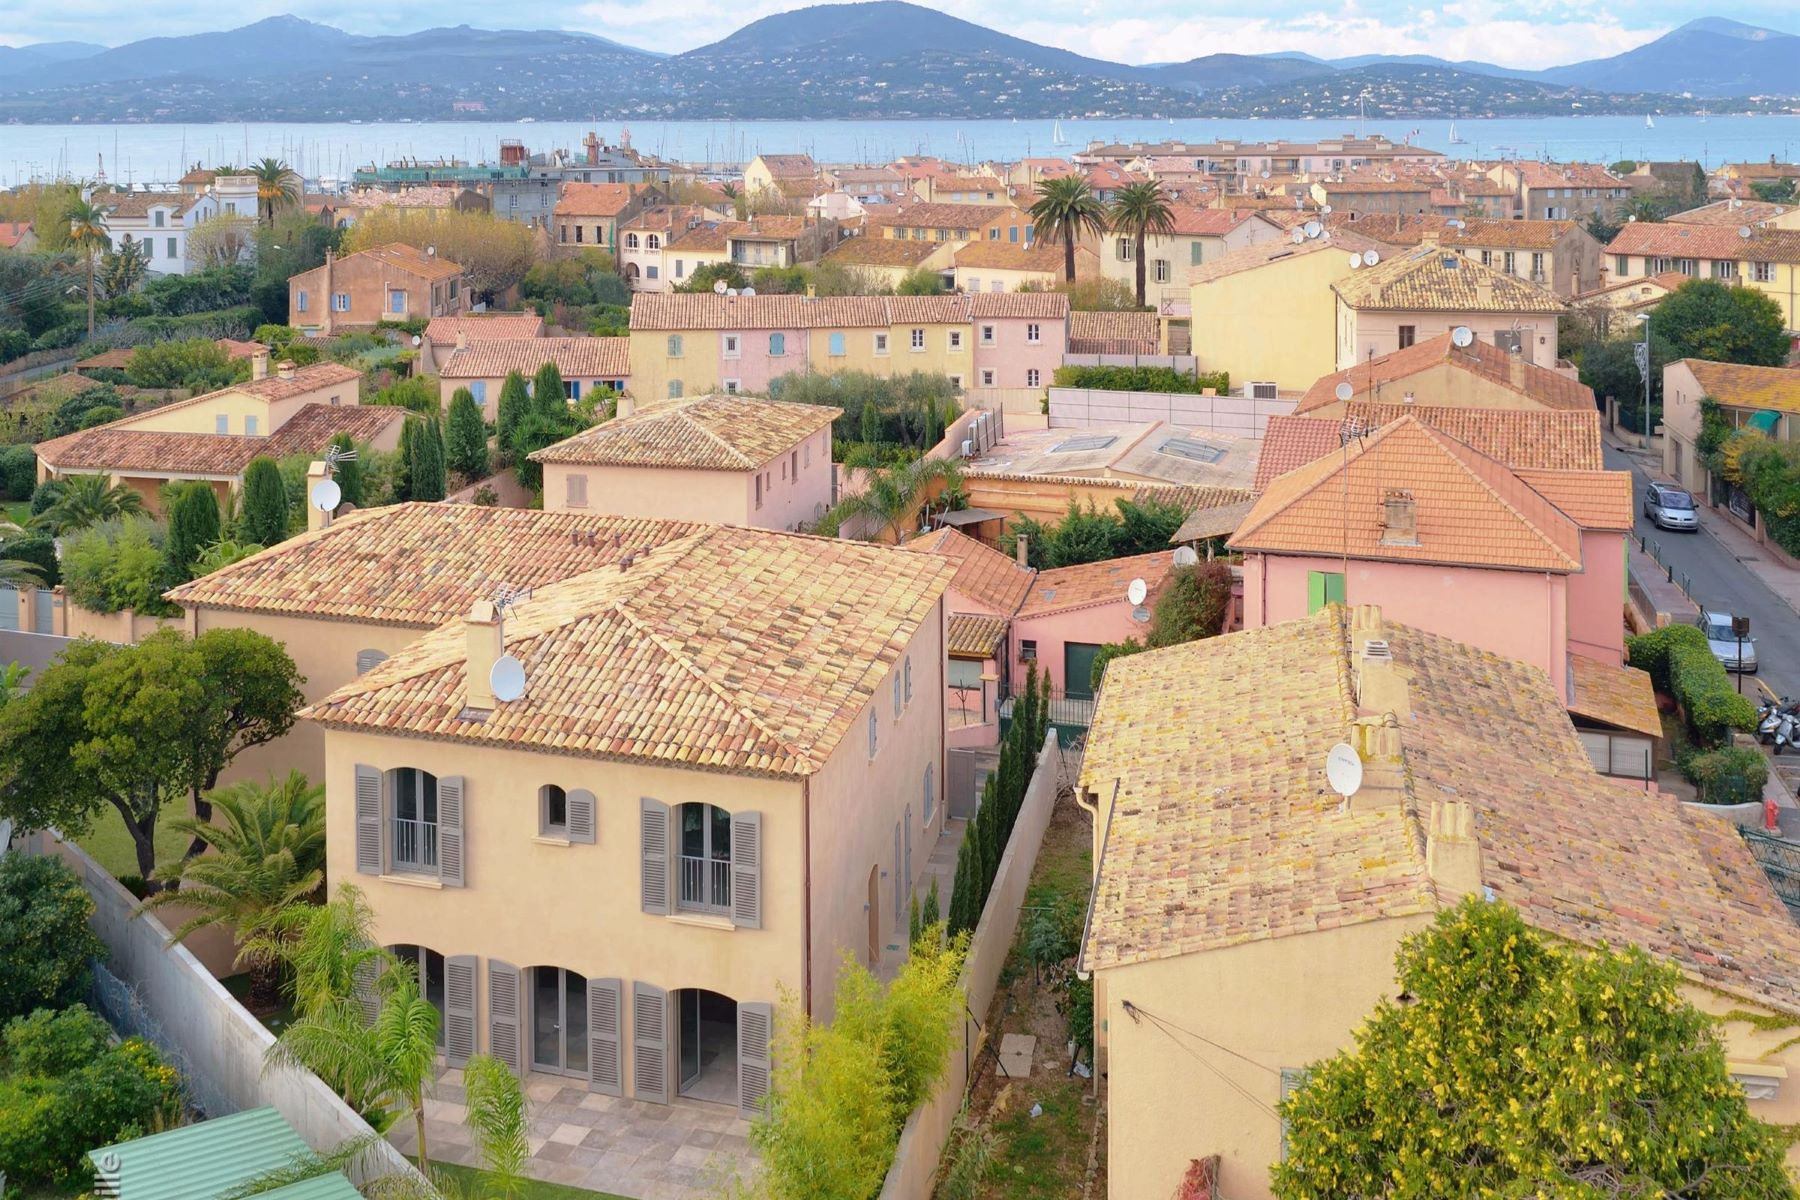 Property for Sale at New house for sale in the center of Saint-Tropez Saint Tropez, Provence-Alpes-Cote D'Azur 83990 France